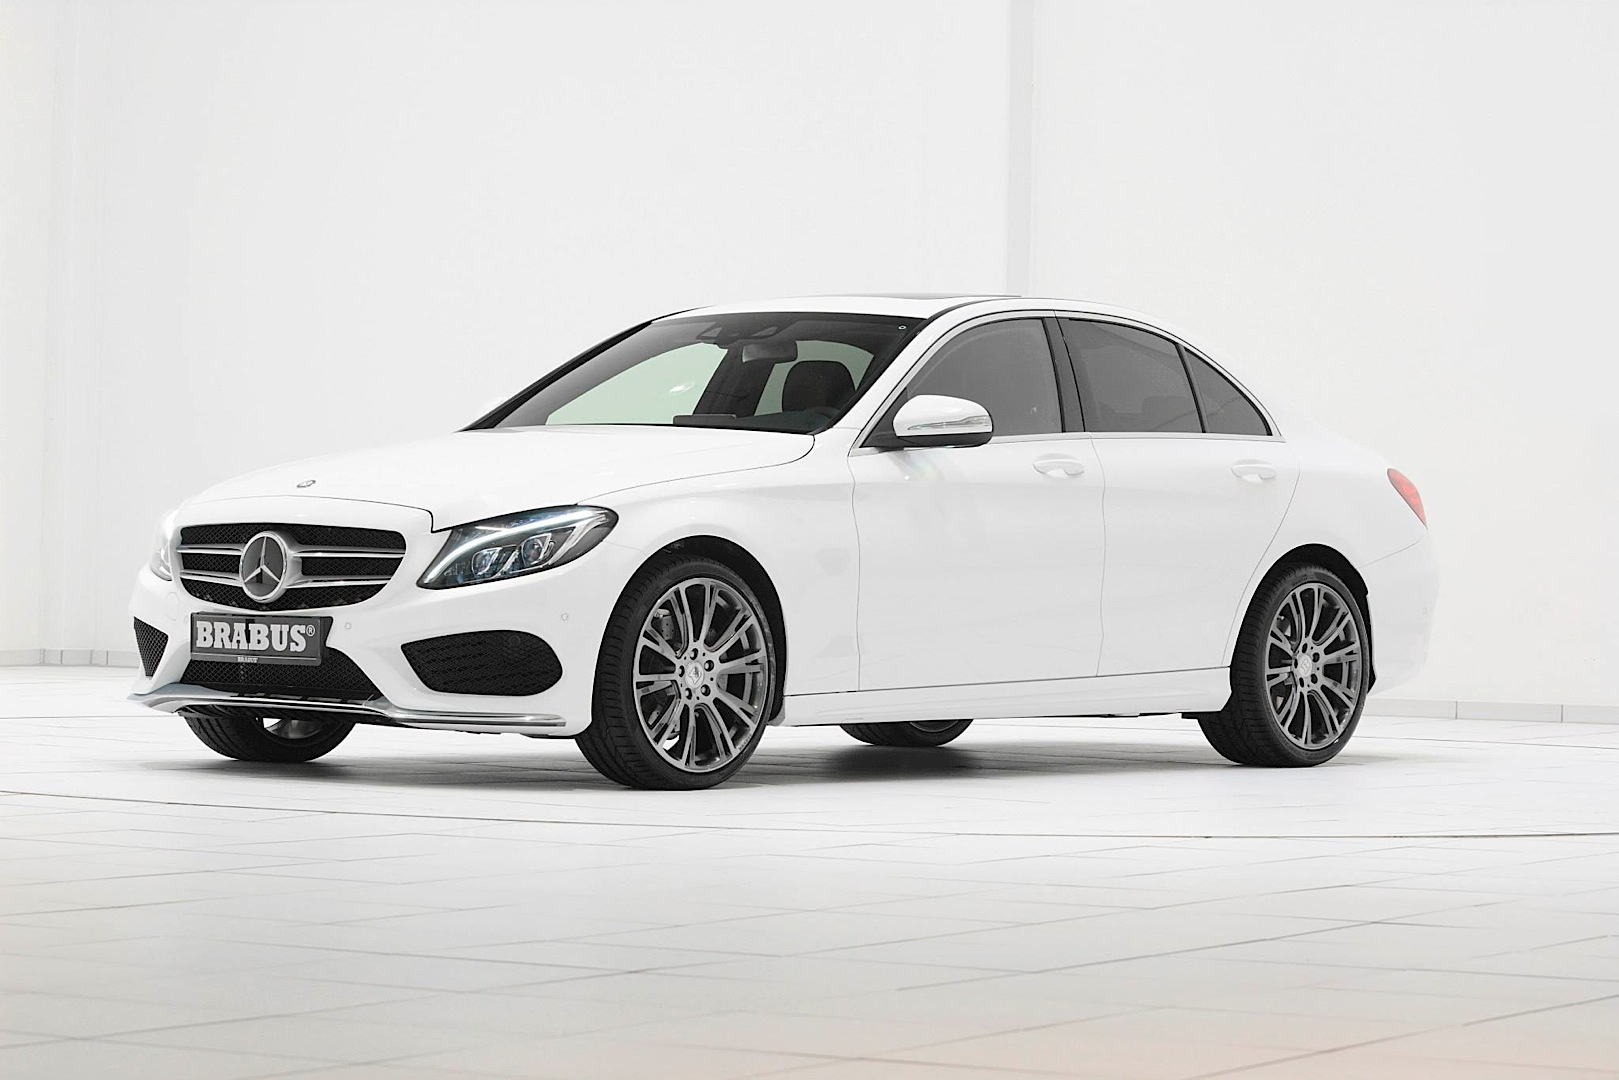 Brabus Launches Wheels For The New C Class W205 Autoevolution